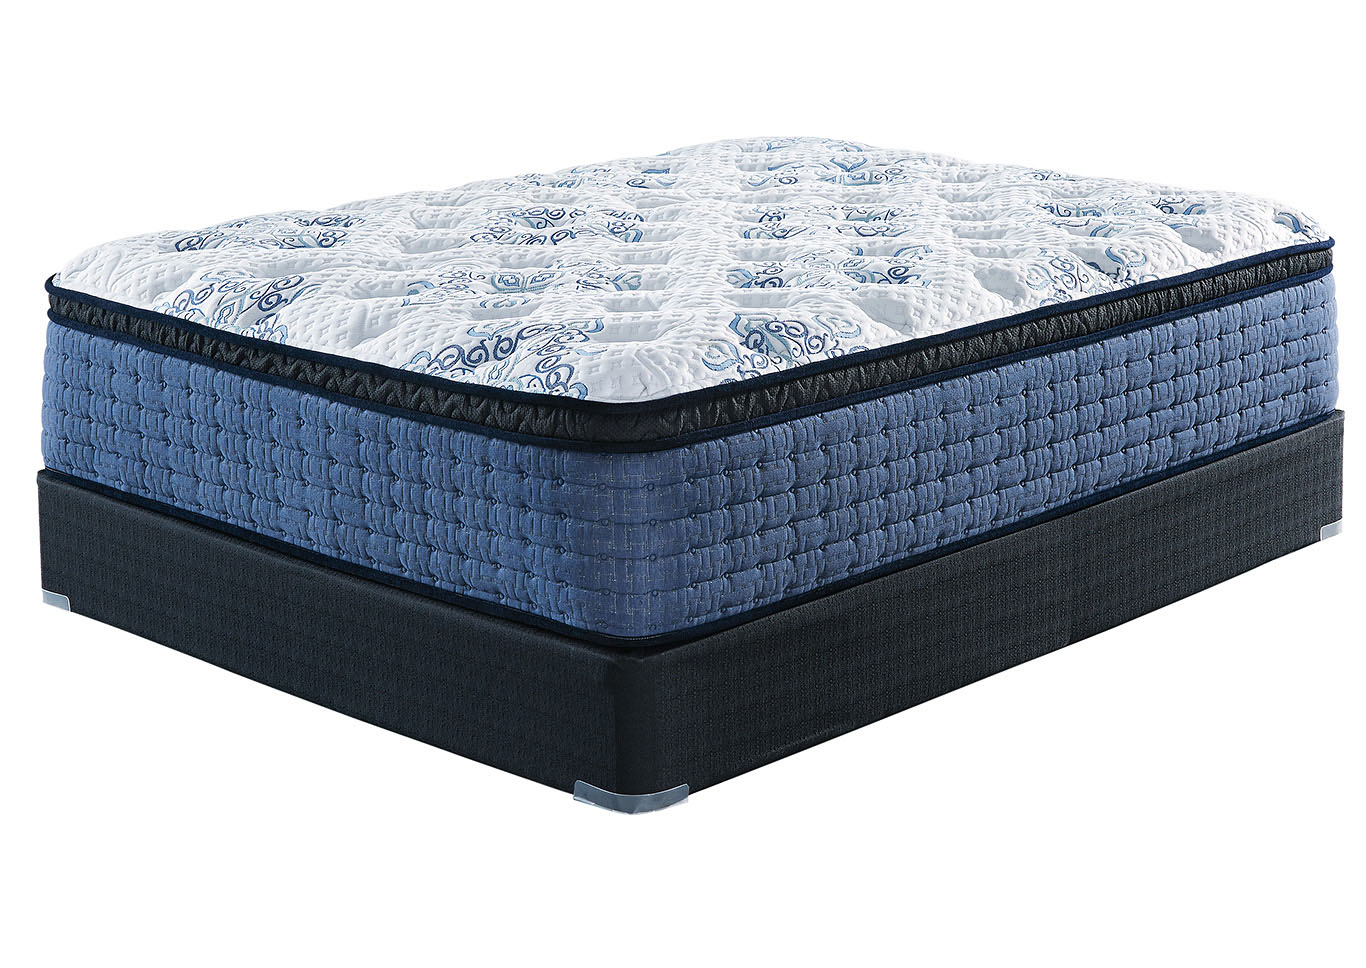 Mt Dana Euro Top Full Mattress w/Foundation,Sierra Sleep by Ashley